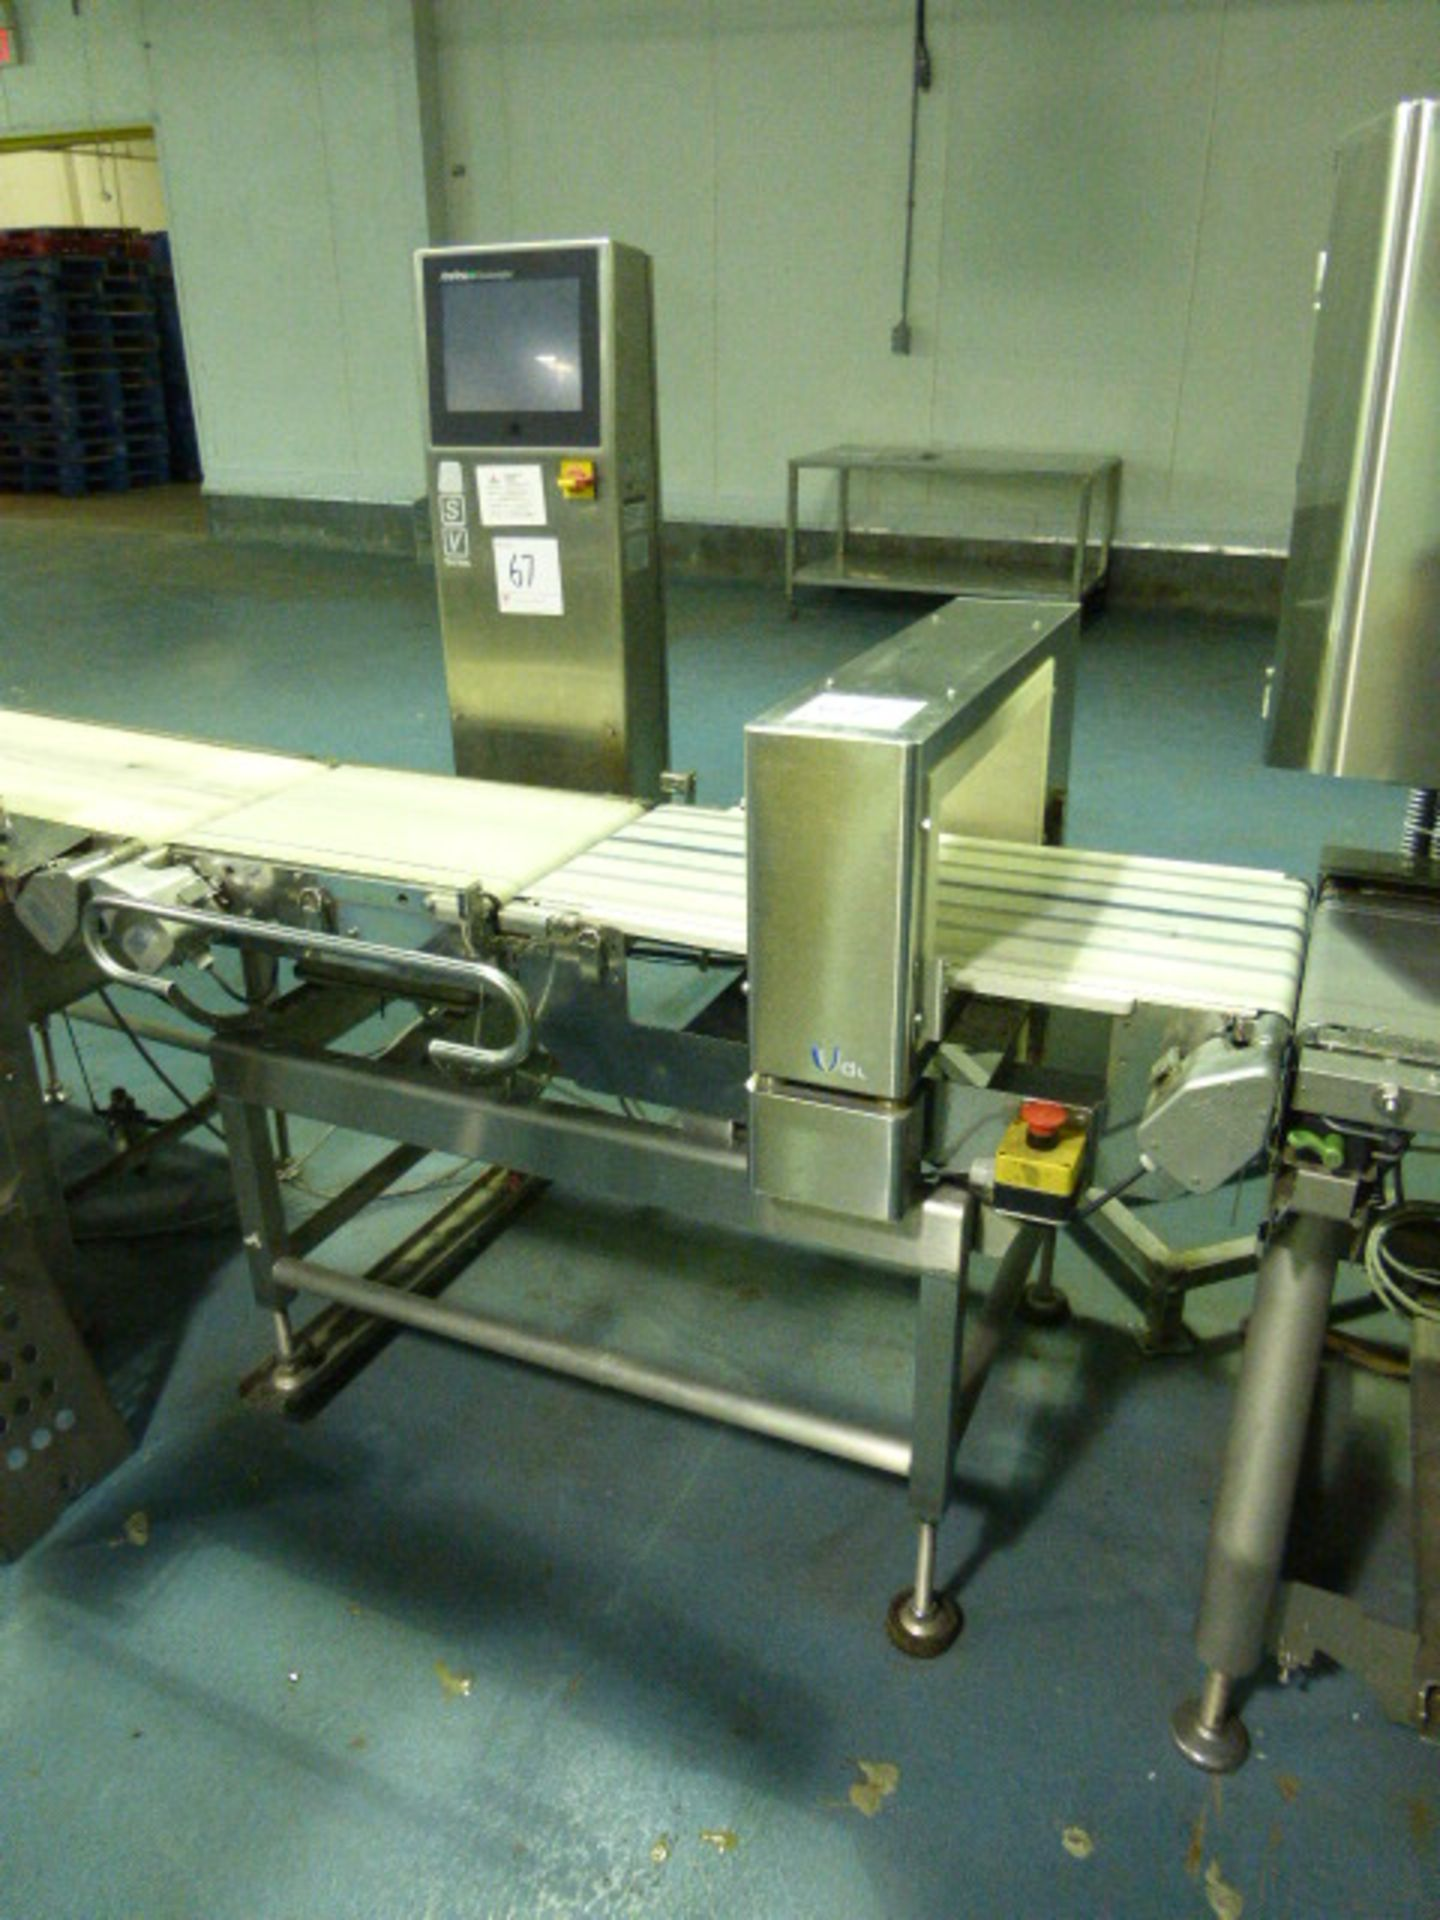 Lot 67 - Anritsu metal detector, mod. KD1126AW, ser. no. 4600019893 and check-weigher, mod.KW5476AW6D, ser.